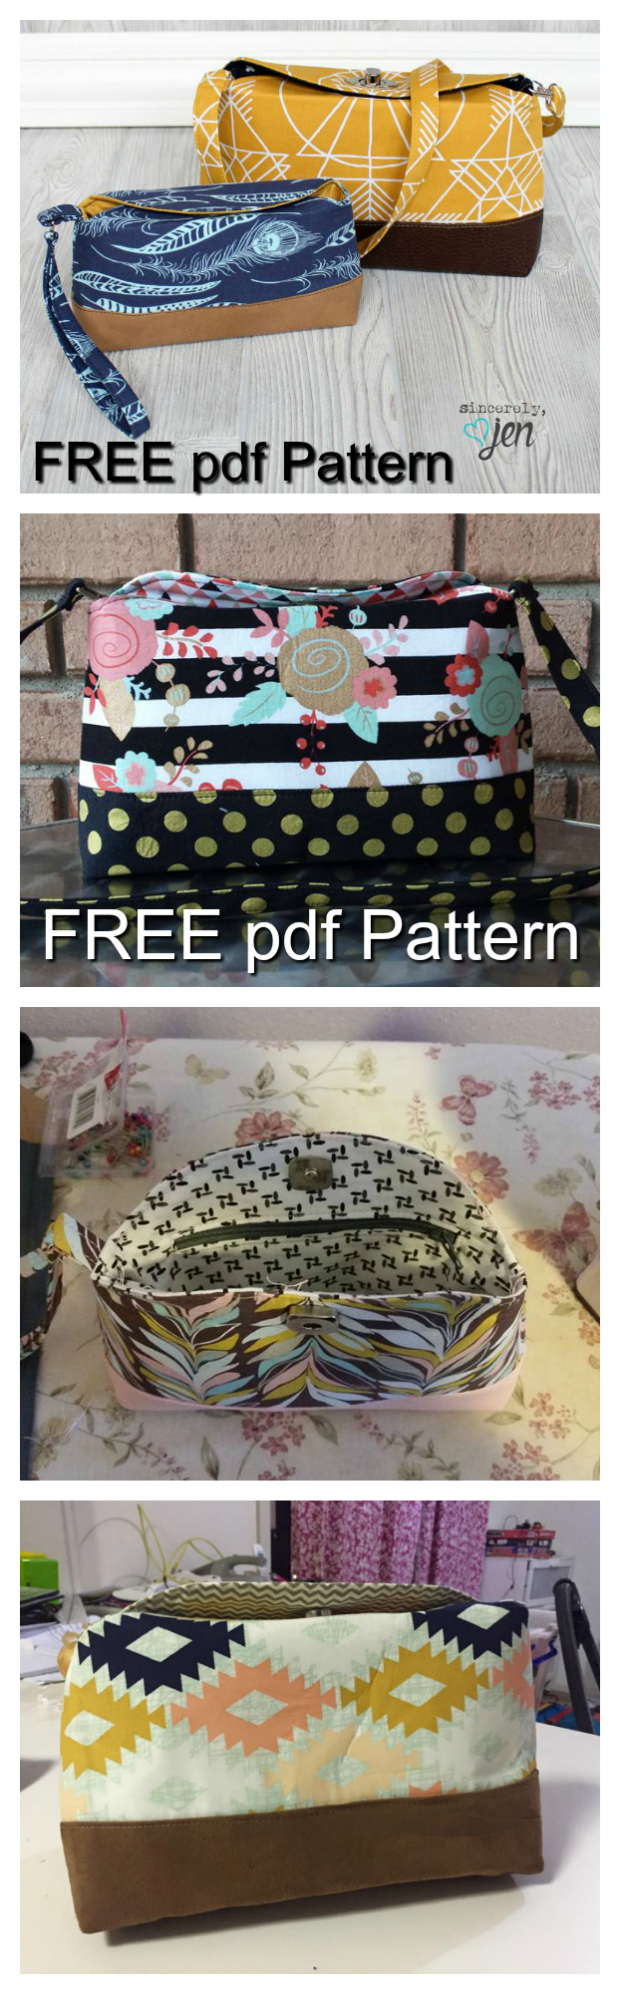 One of the best and most popular bag designers brings you a FREE pdf pattern for a Clutch AND Wristlet bag called Marianne. Marianne is an essential bag for a night out on the town - dress it up or go casual. The Large Clutch option features a turn lock closure and removable hidden strap. The Mini Wristlet includes a wristlet strap and magnetic snap closure. A zippered pocket inside keeps the small things secure.